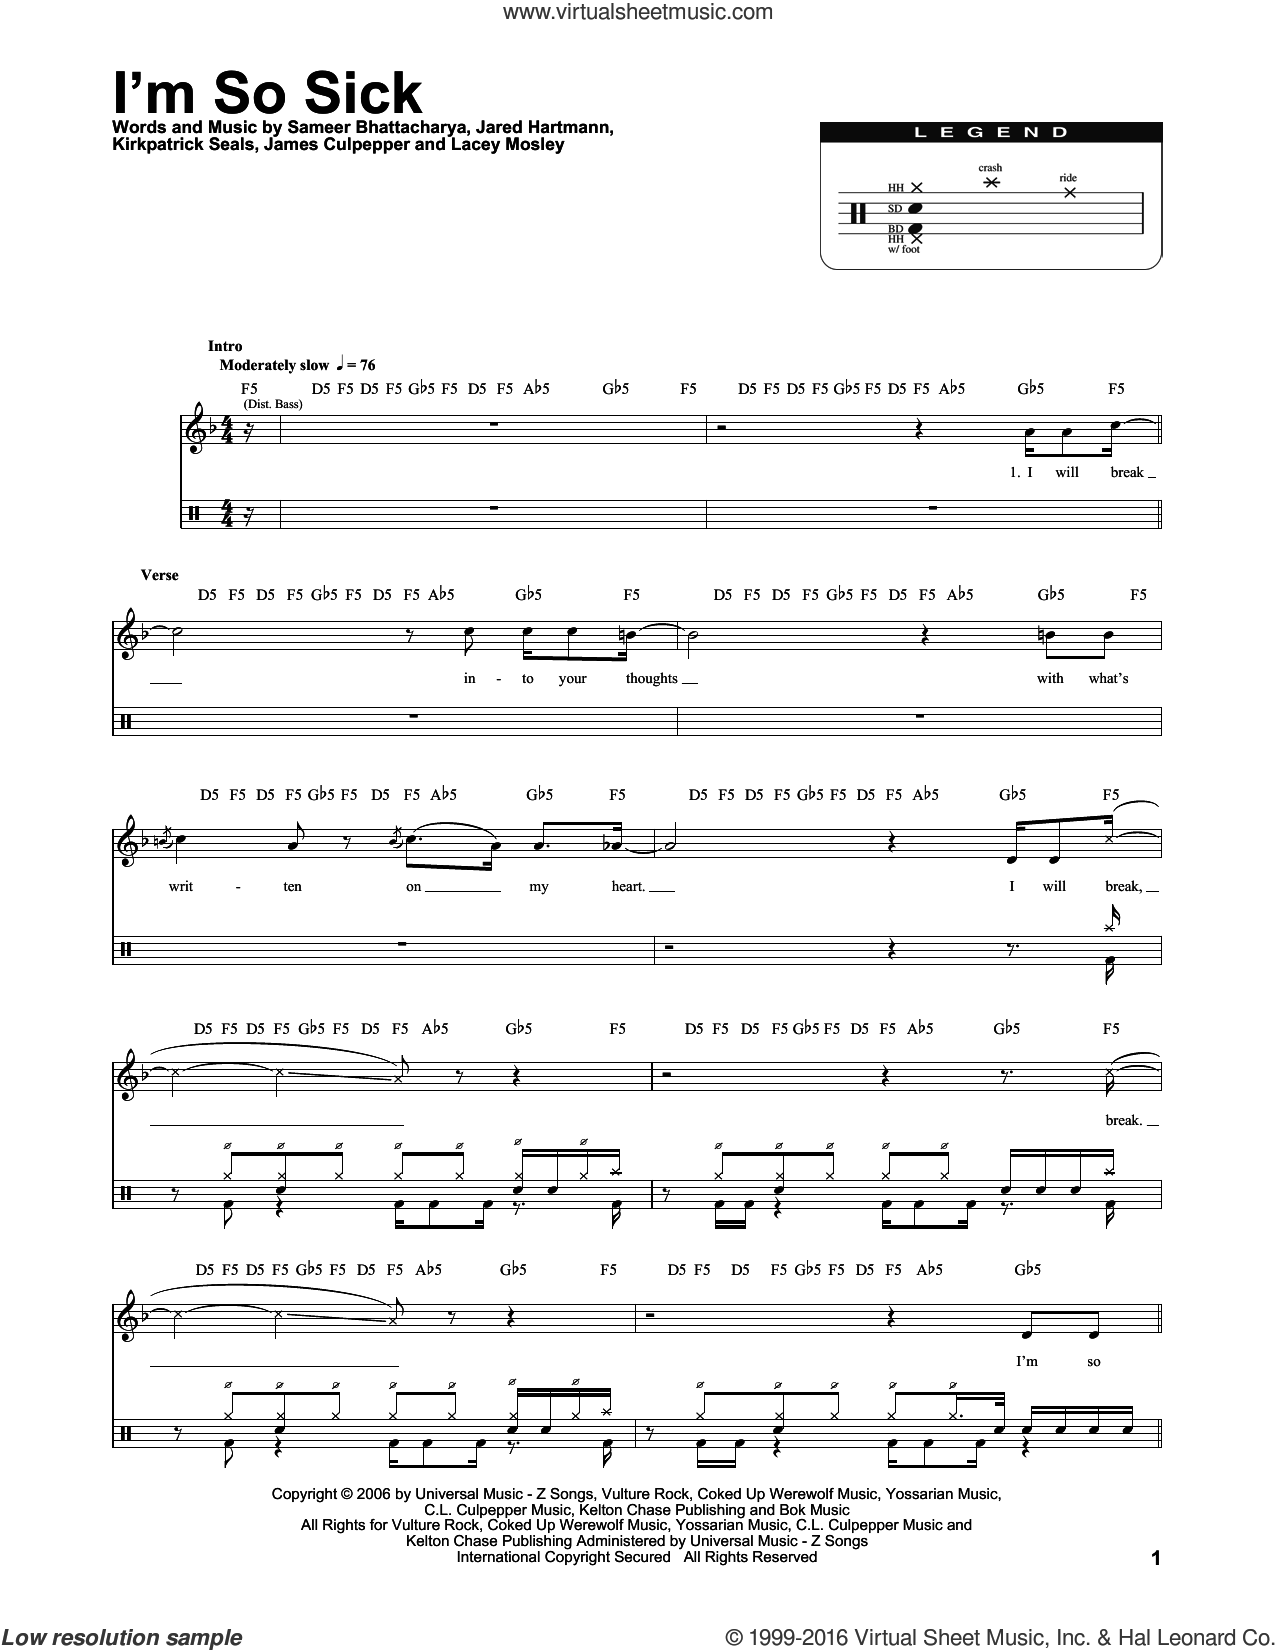 I'm So Sick sheet music for drums by Flyleaf, James Culpepper, Jared Hartmann, Kirkpatrick Seals, Lacey Mosley and Sameer Bhattacharya, intermediate skill level